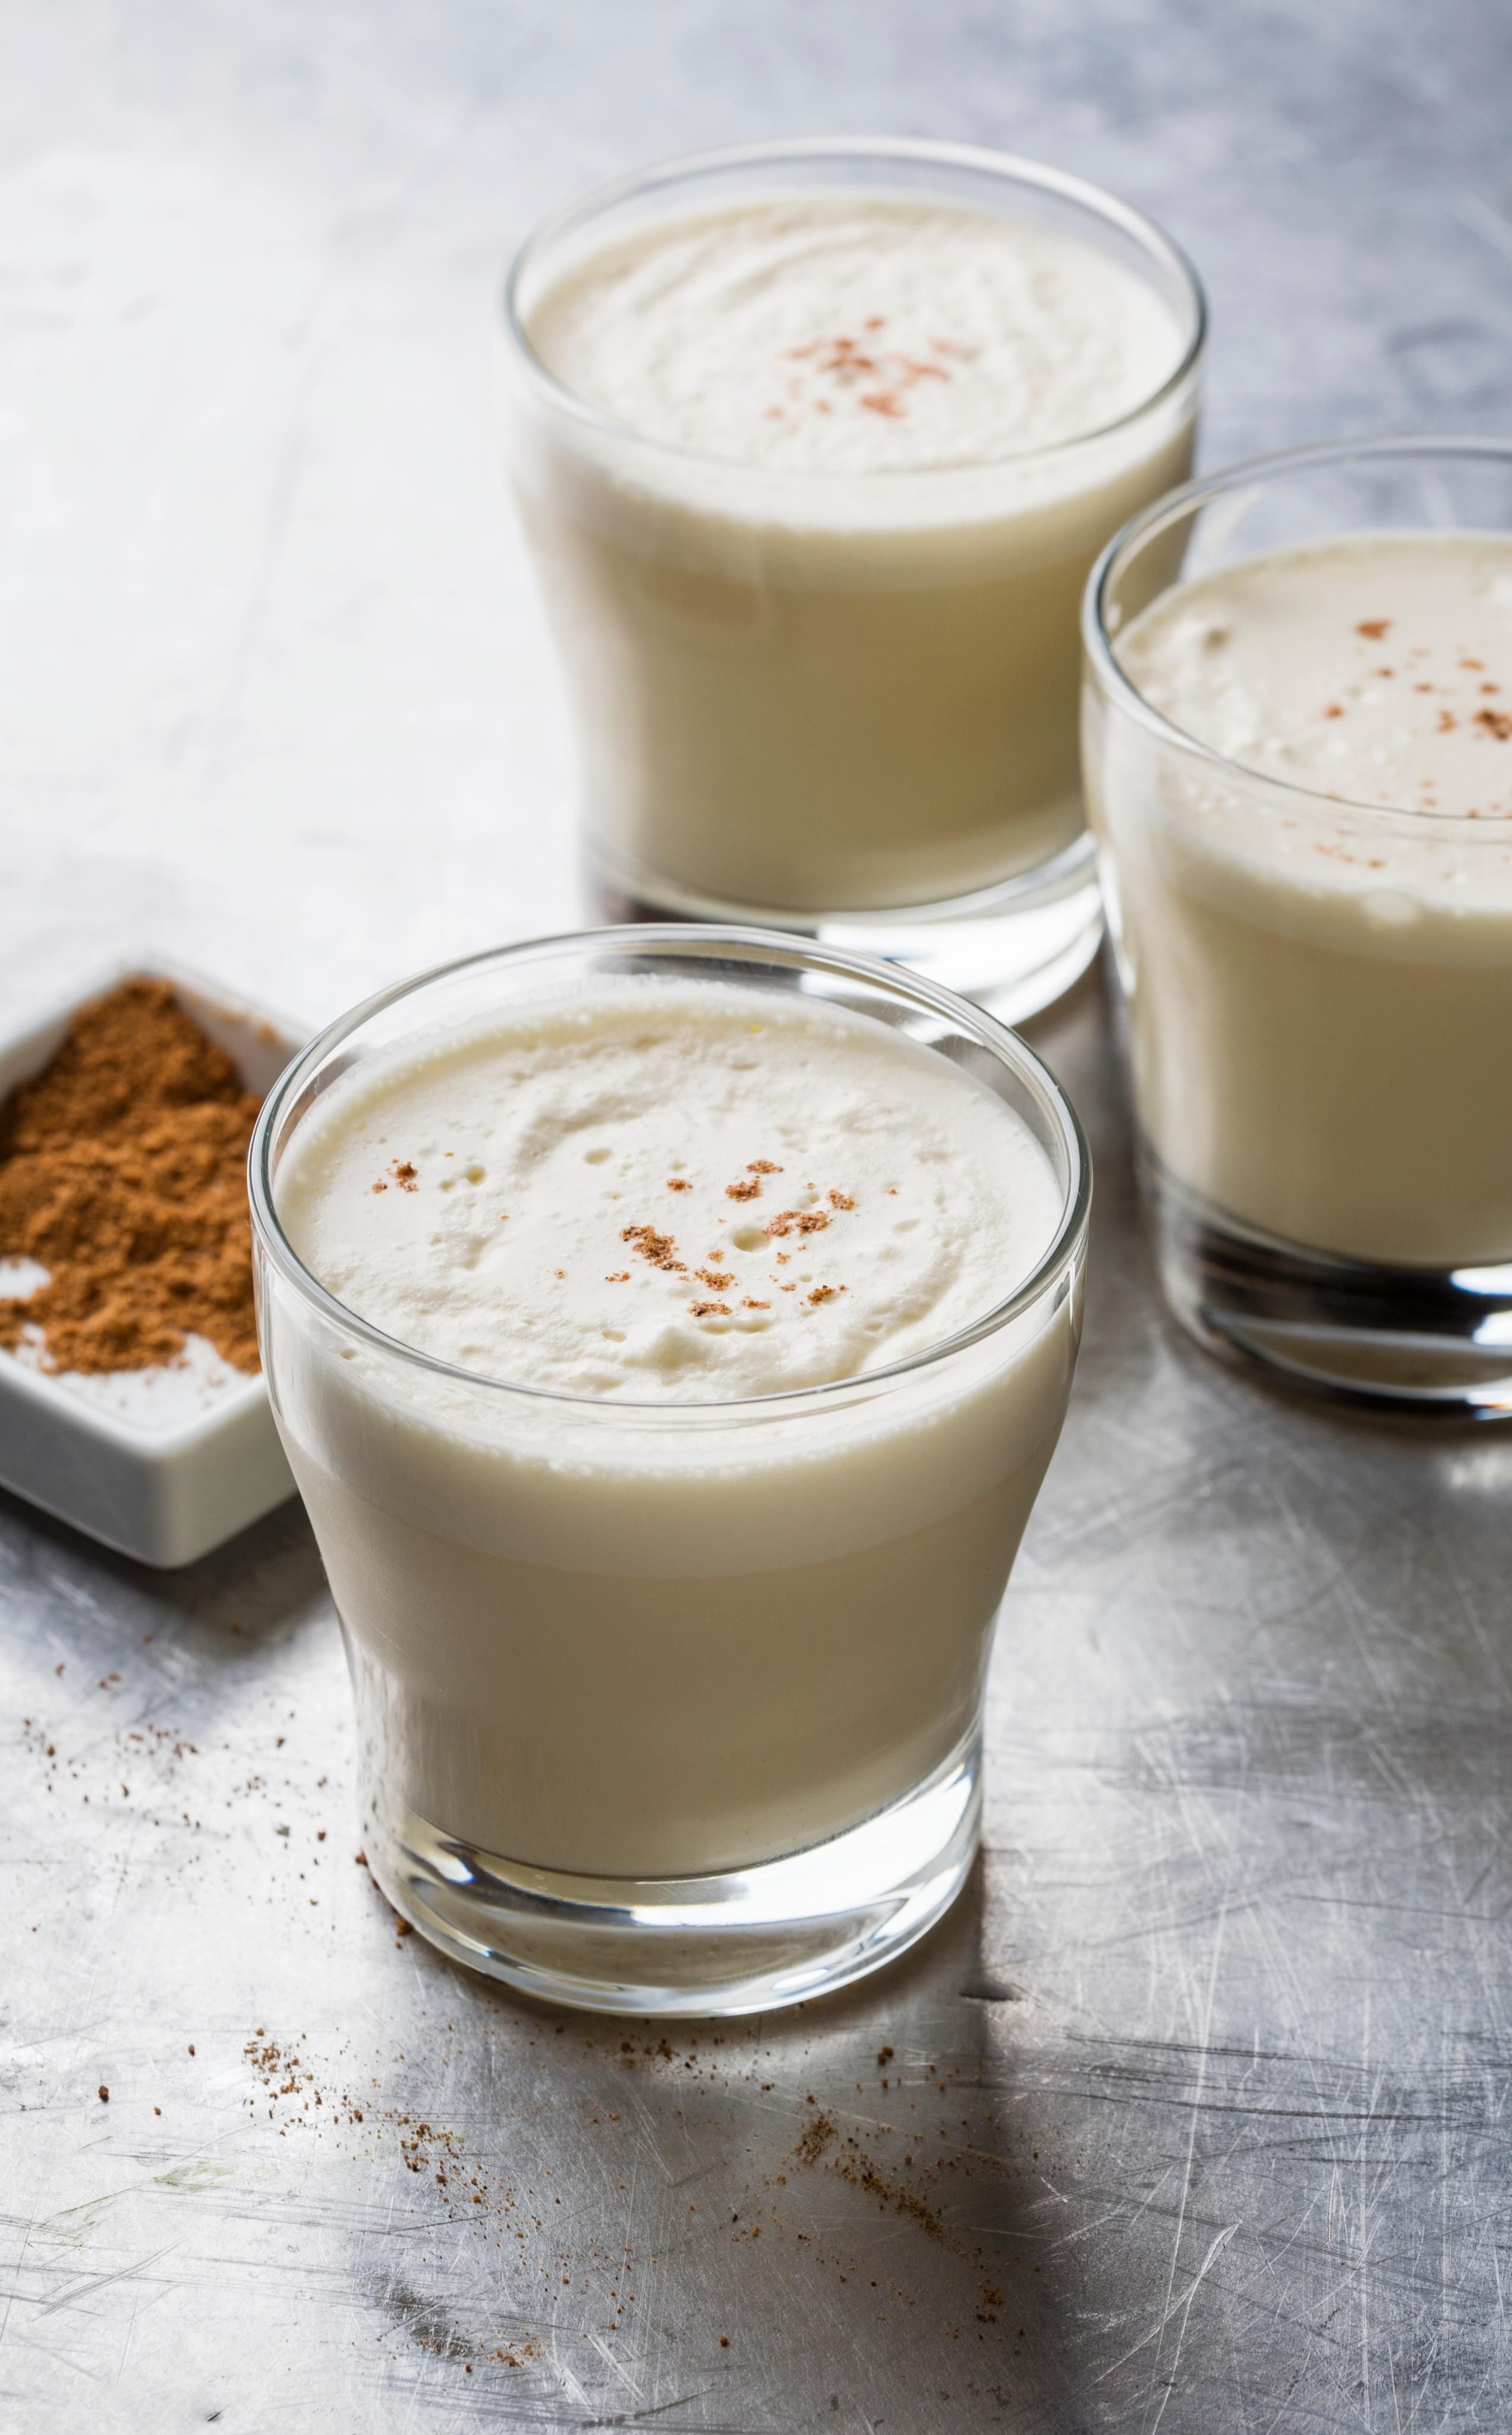 Holiday Eggnog We Wanted A Rich Eggnog Recipe With A Relatively